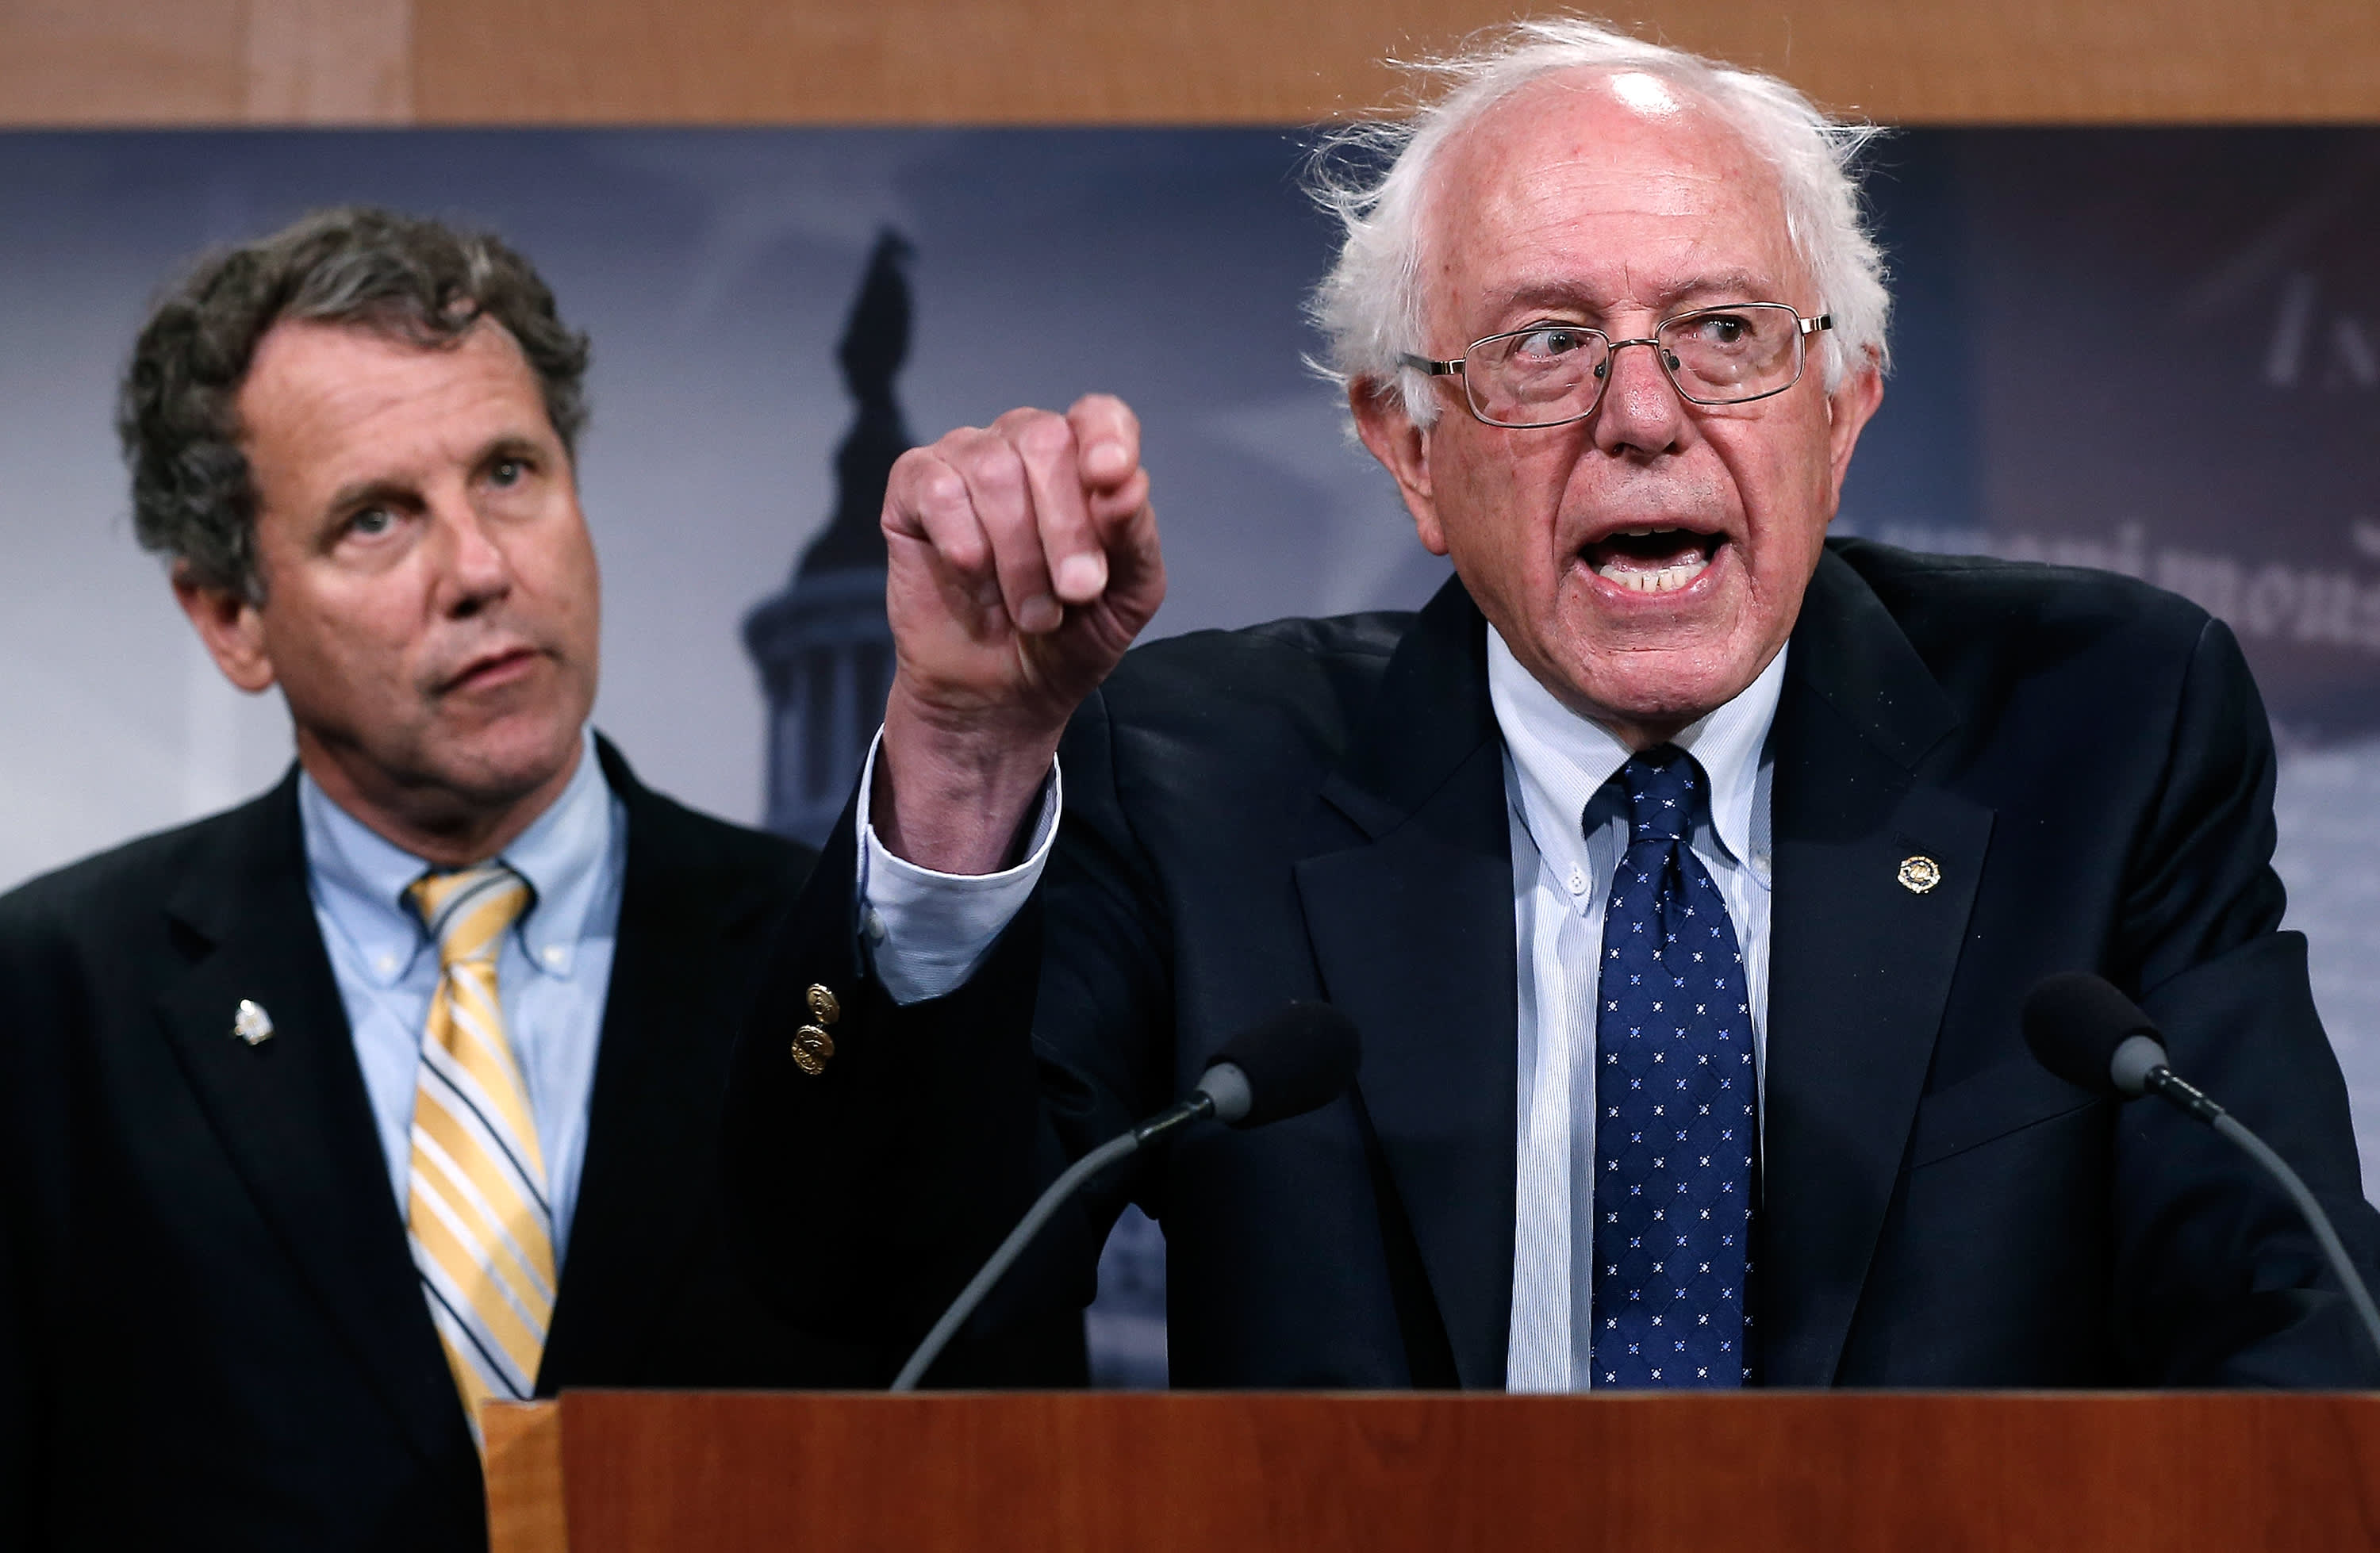 Sen. Bernie Sanders (I-VT) during a press conference at the U.S. Capitol July 24, 2014 in Washington, DC. Sanders, chairman of the committee, has indicated disagreement with the House legislative proposal to address problems with the Department of Veteran